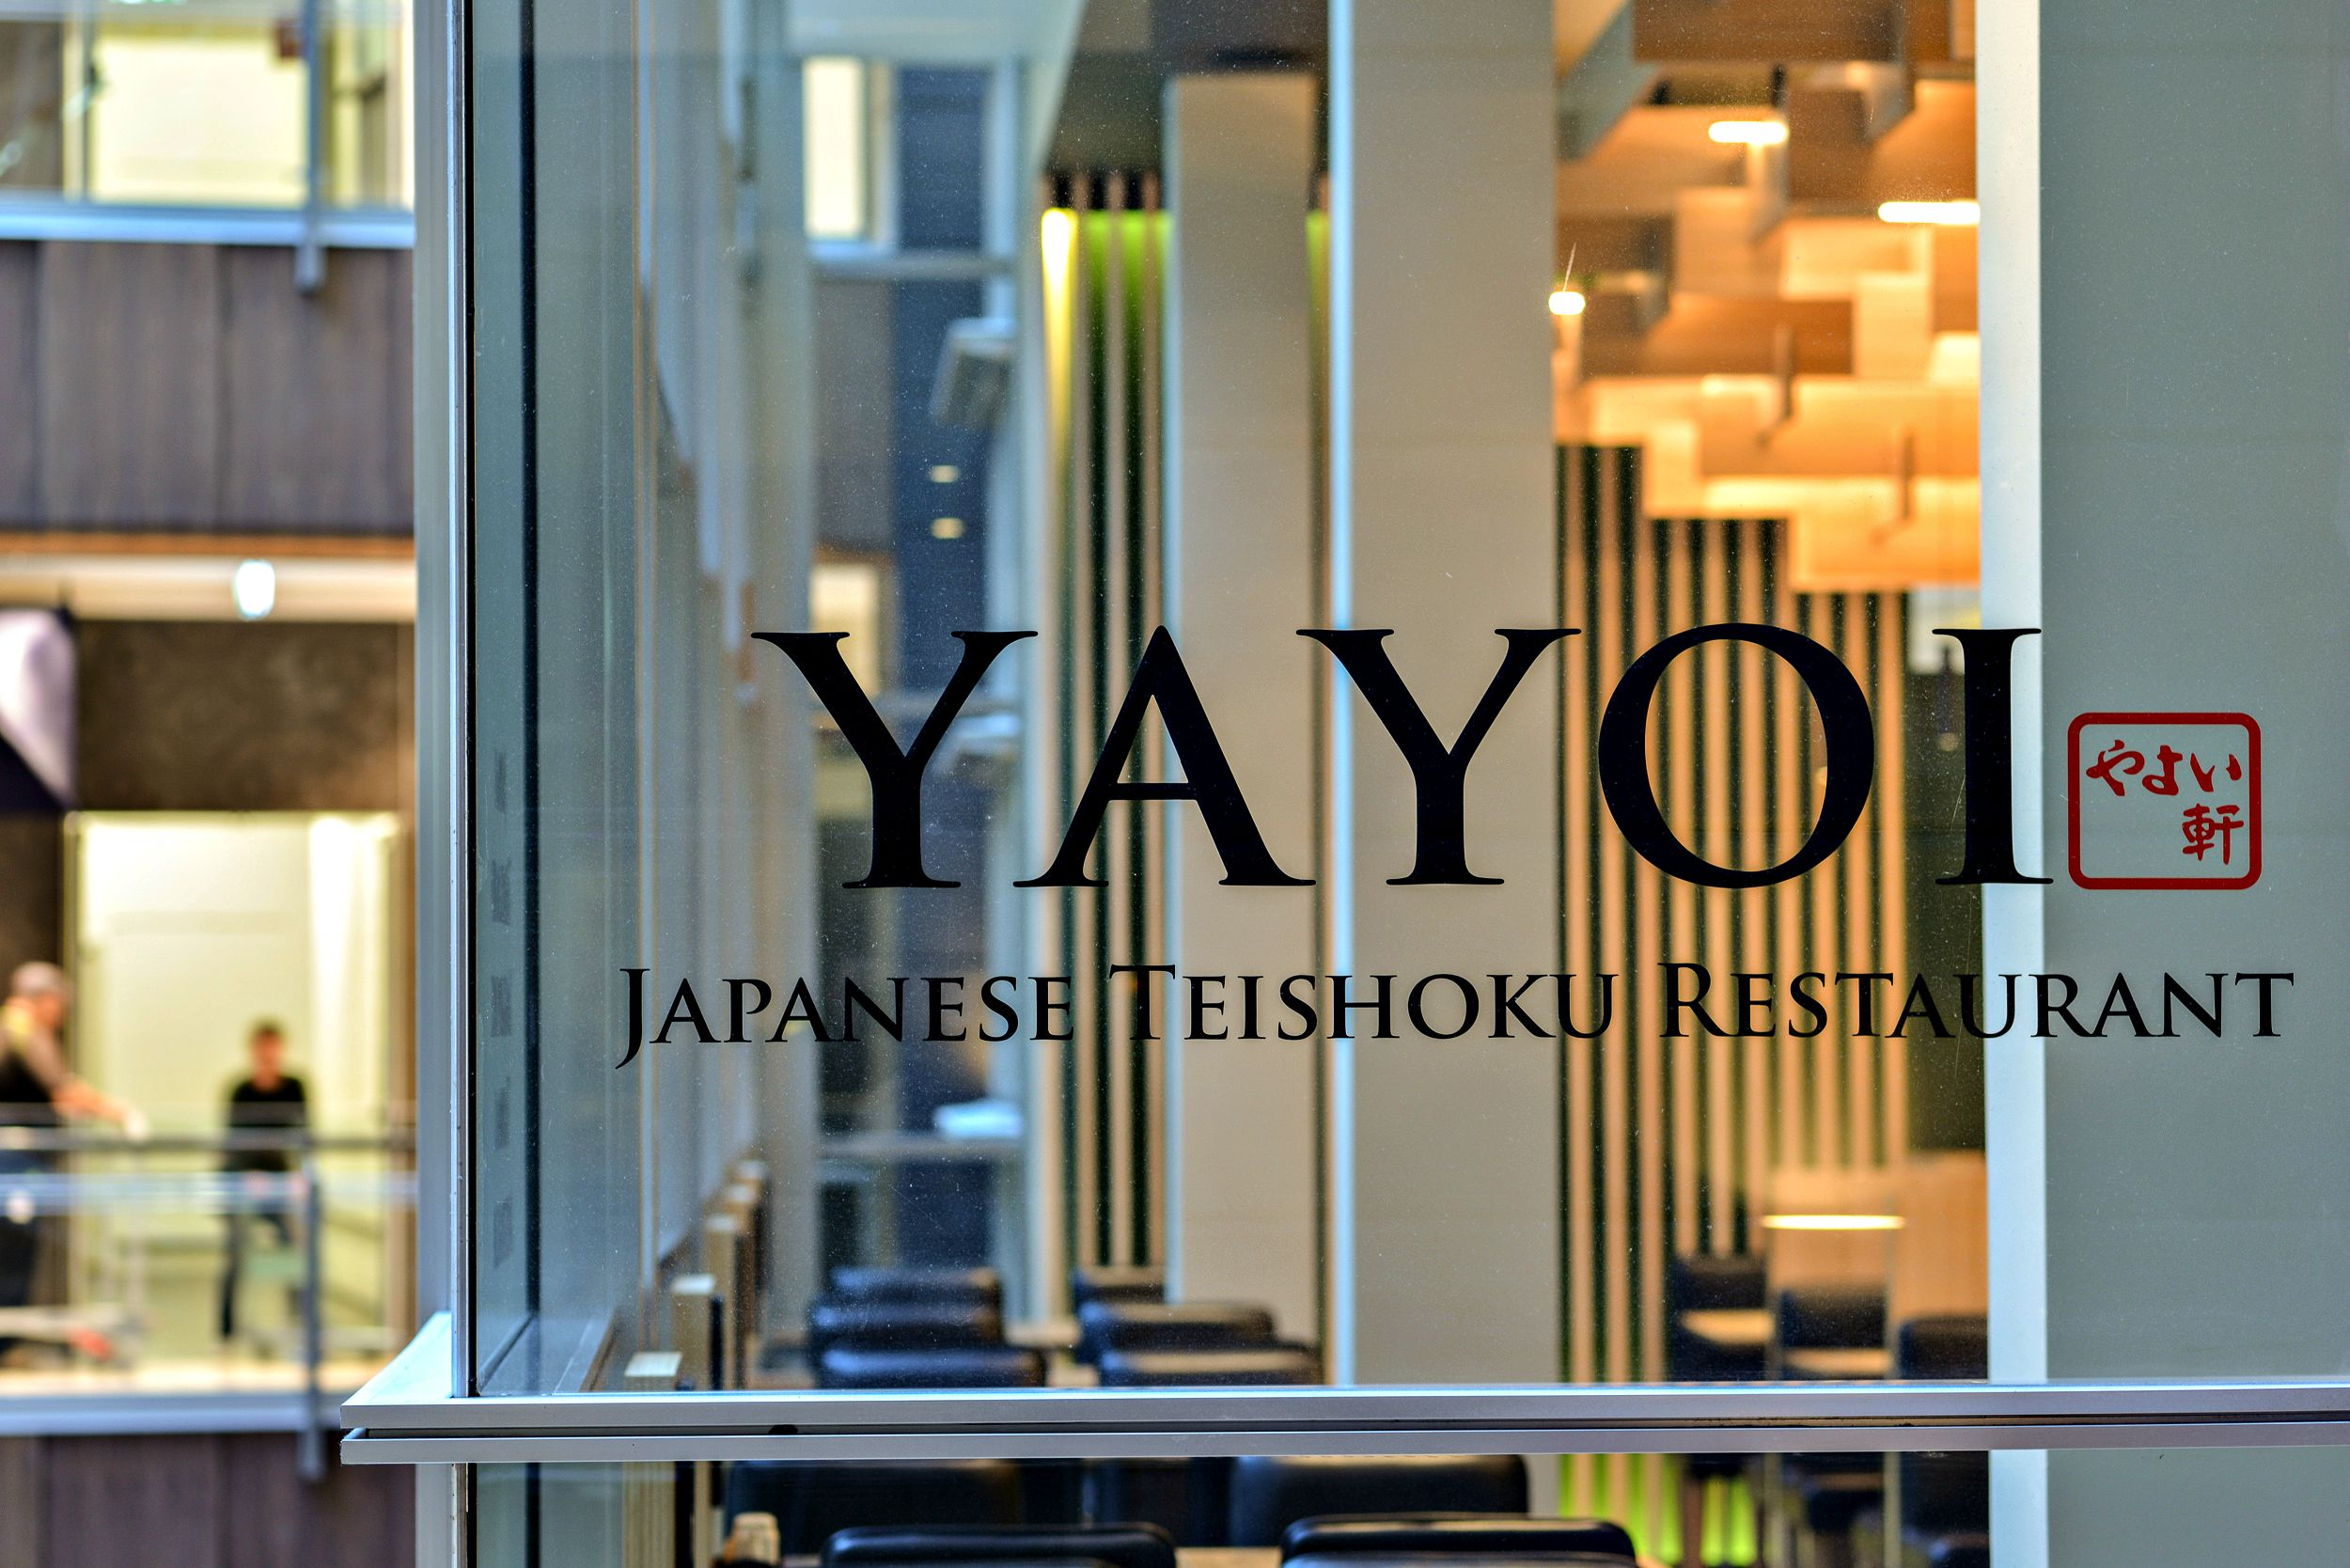 Yayoi Chain Japanese Restaurant Functions